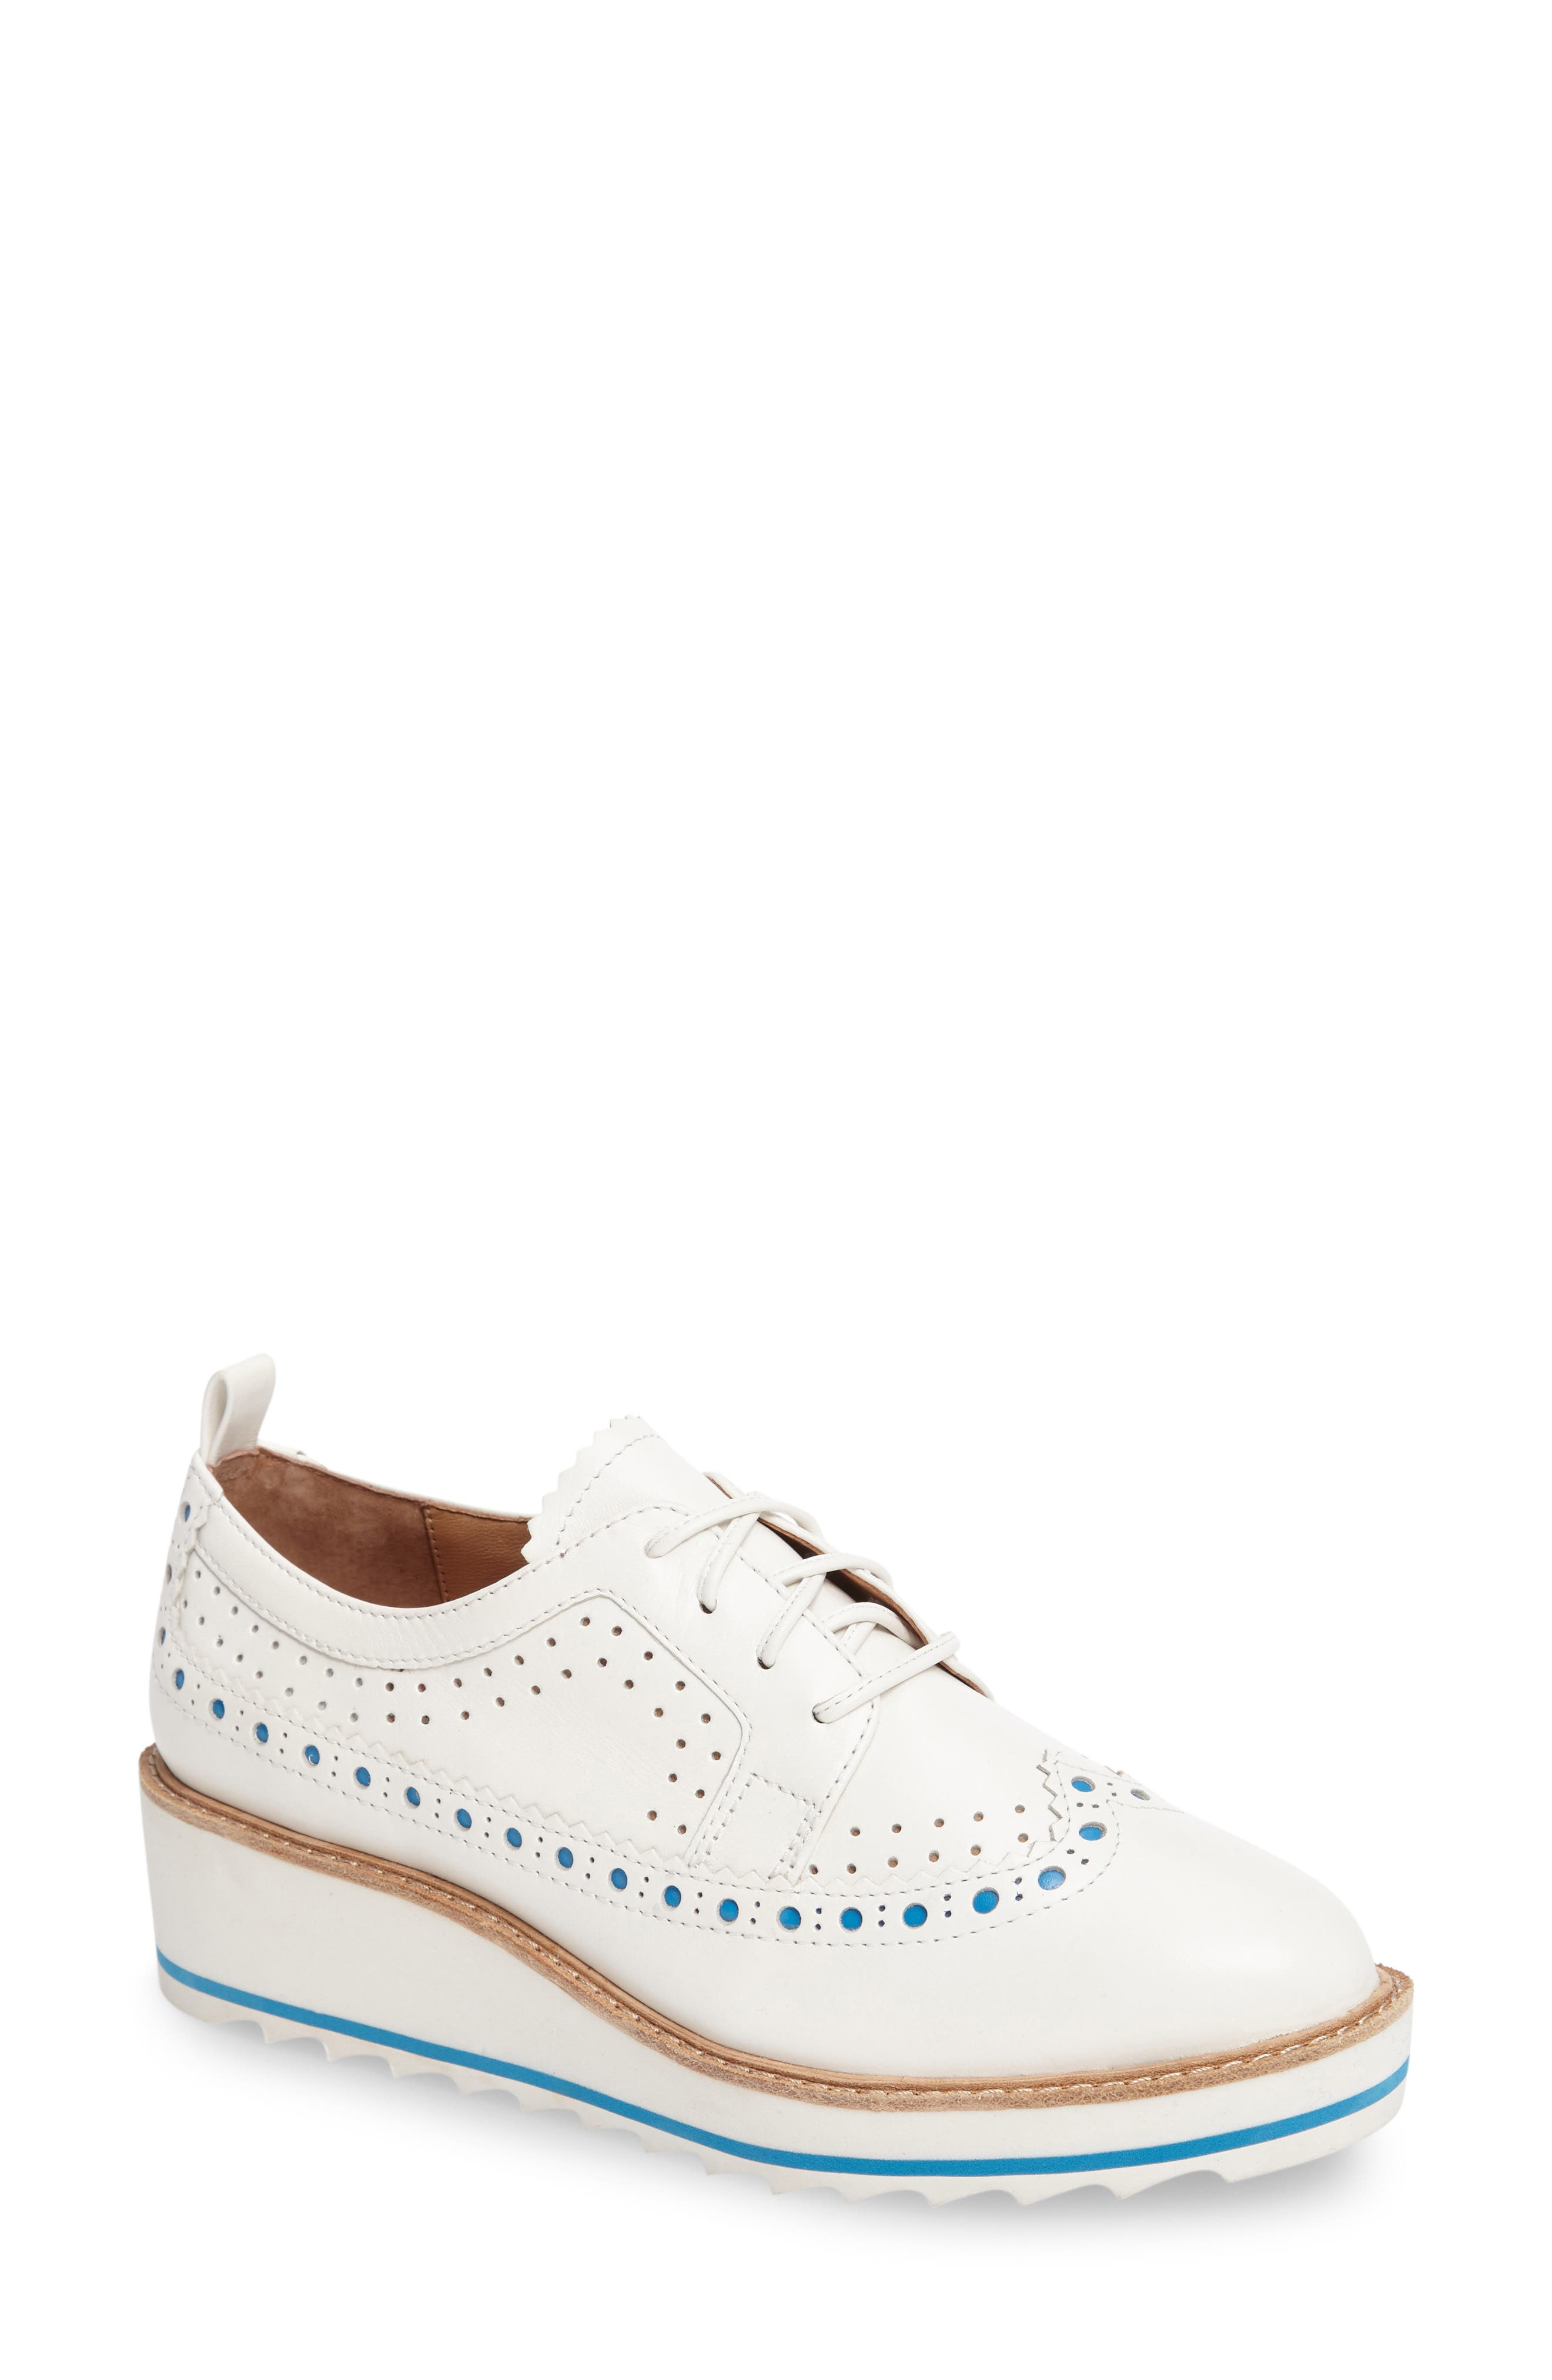 Alternate Image 1 Selected - Linea Paolo Malti Platform Wedge Oxford (Women)